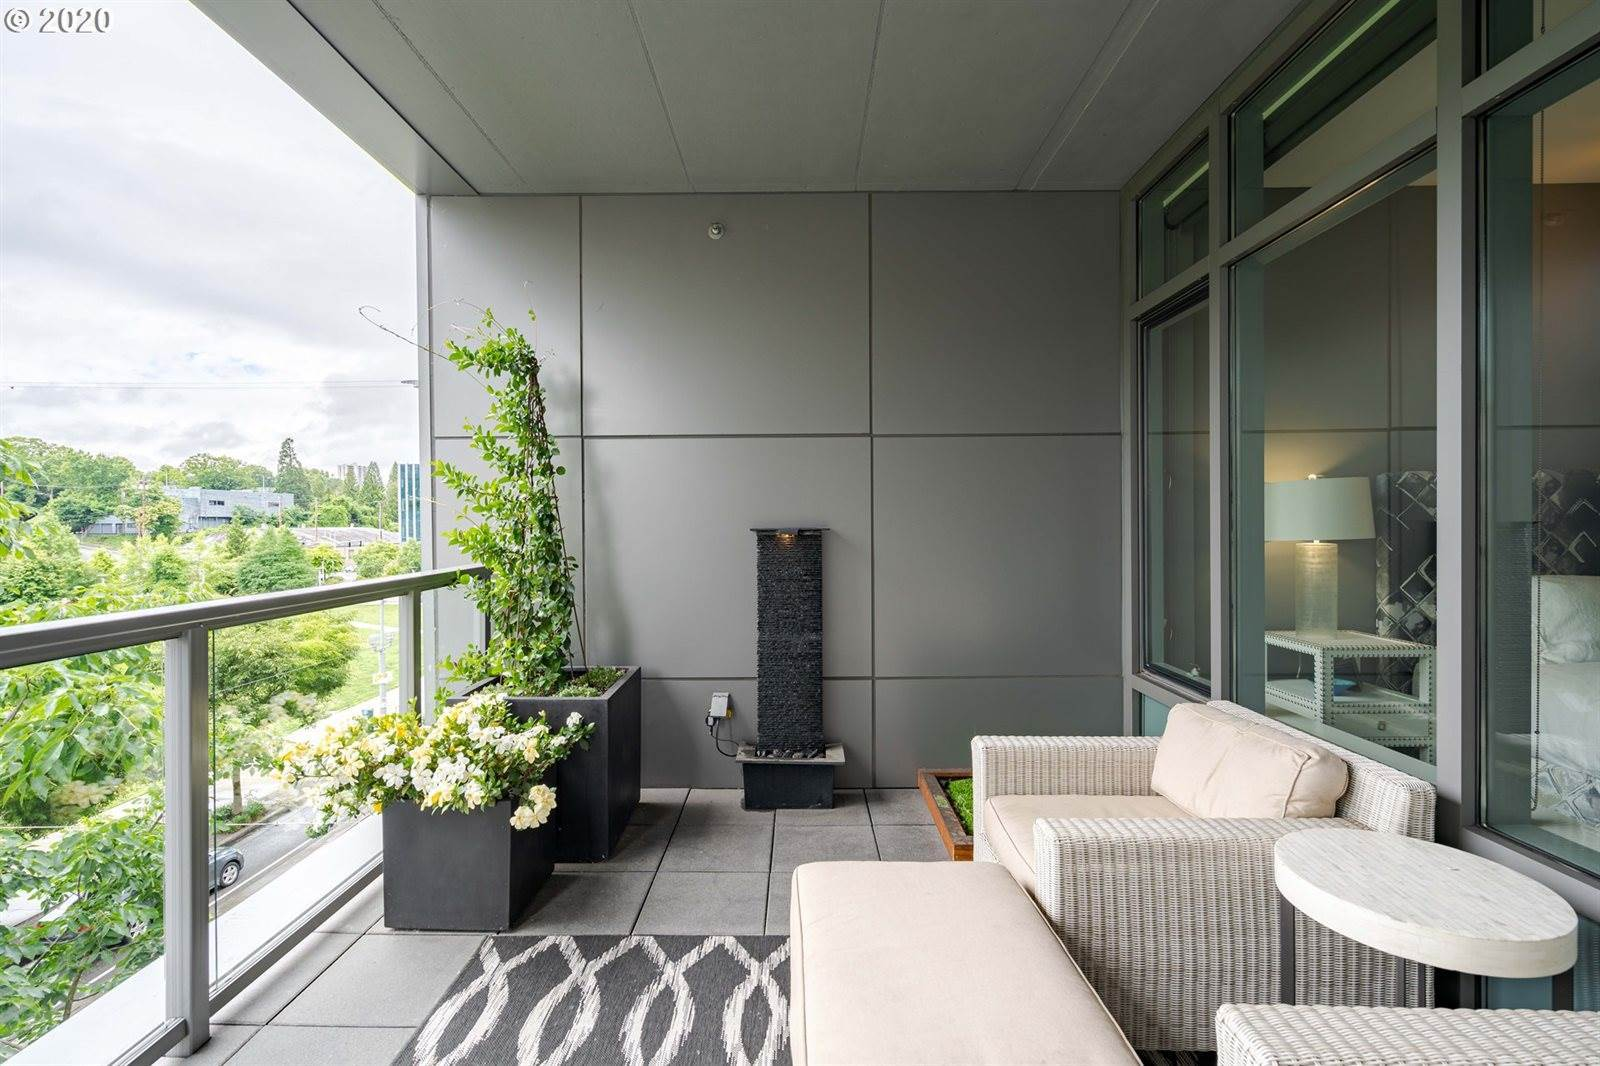 3601 South River Pkwy, #307, Portland, OR 97239